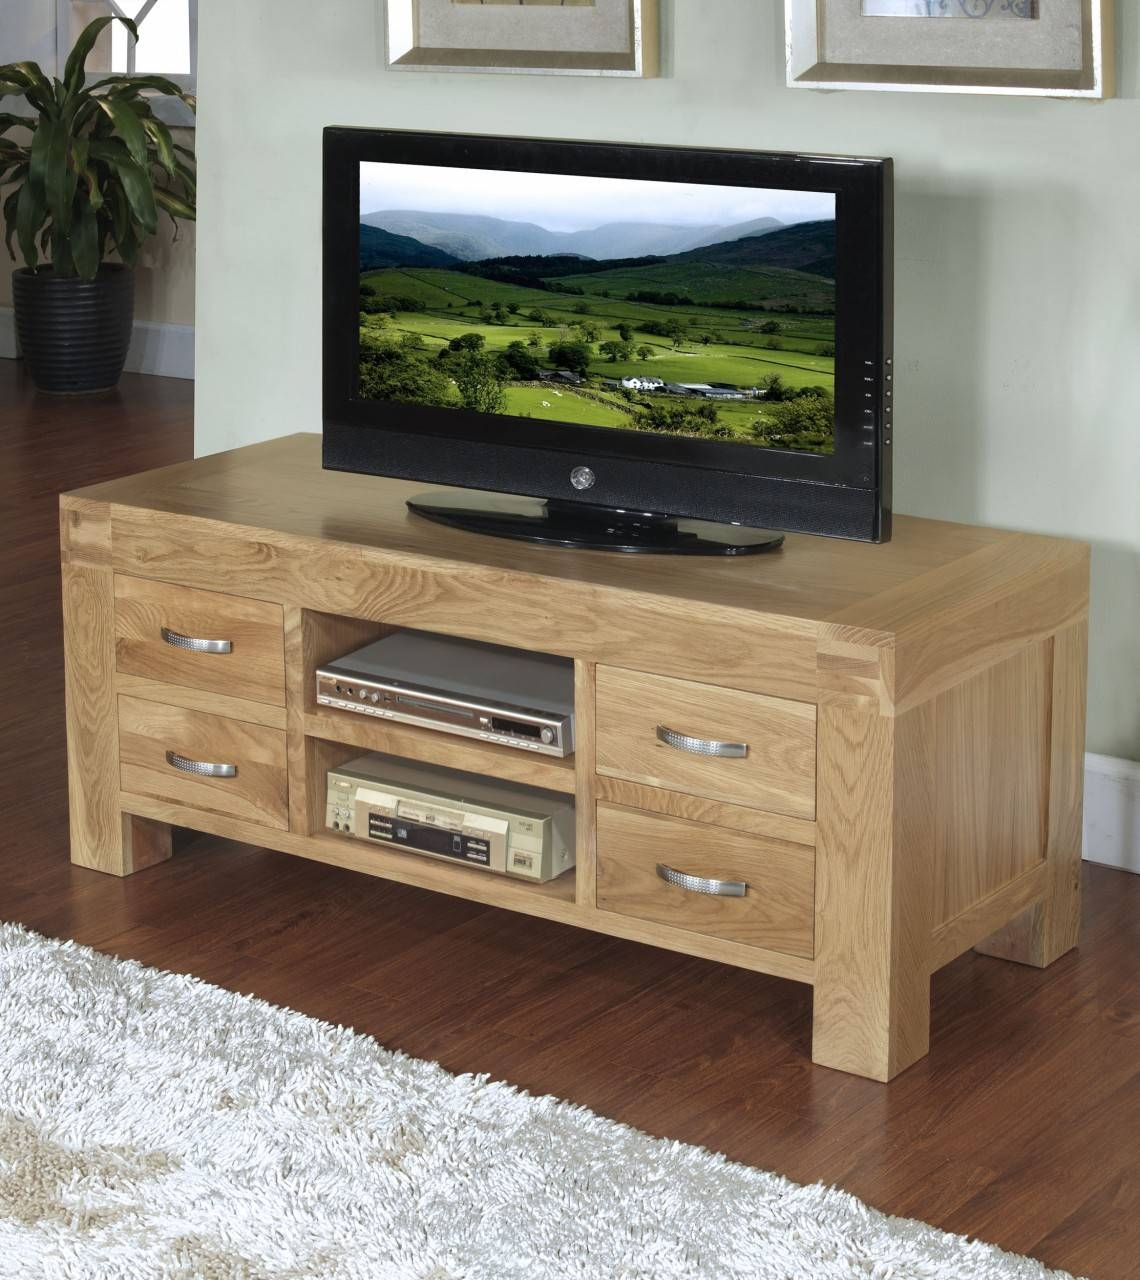 Rivermead Solid Oak Modern Furniture Widescreen Tv Cabinet Stand throughout Oak Tv Cabinets With Doors (Image 11 of 15)